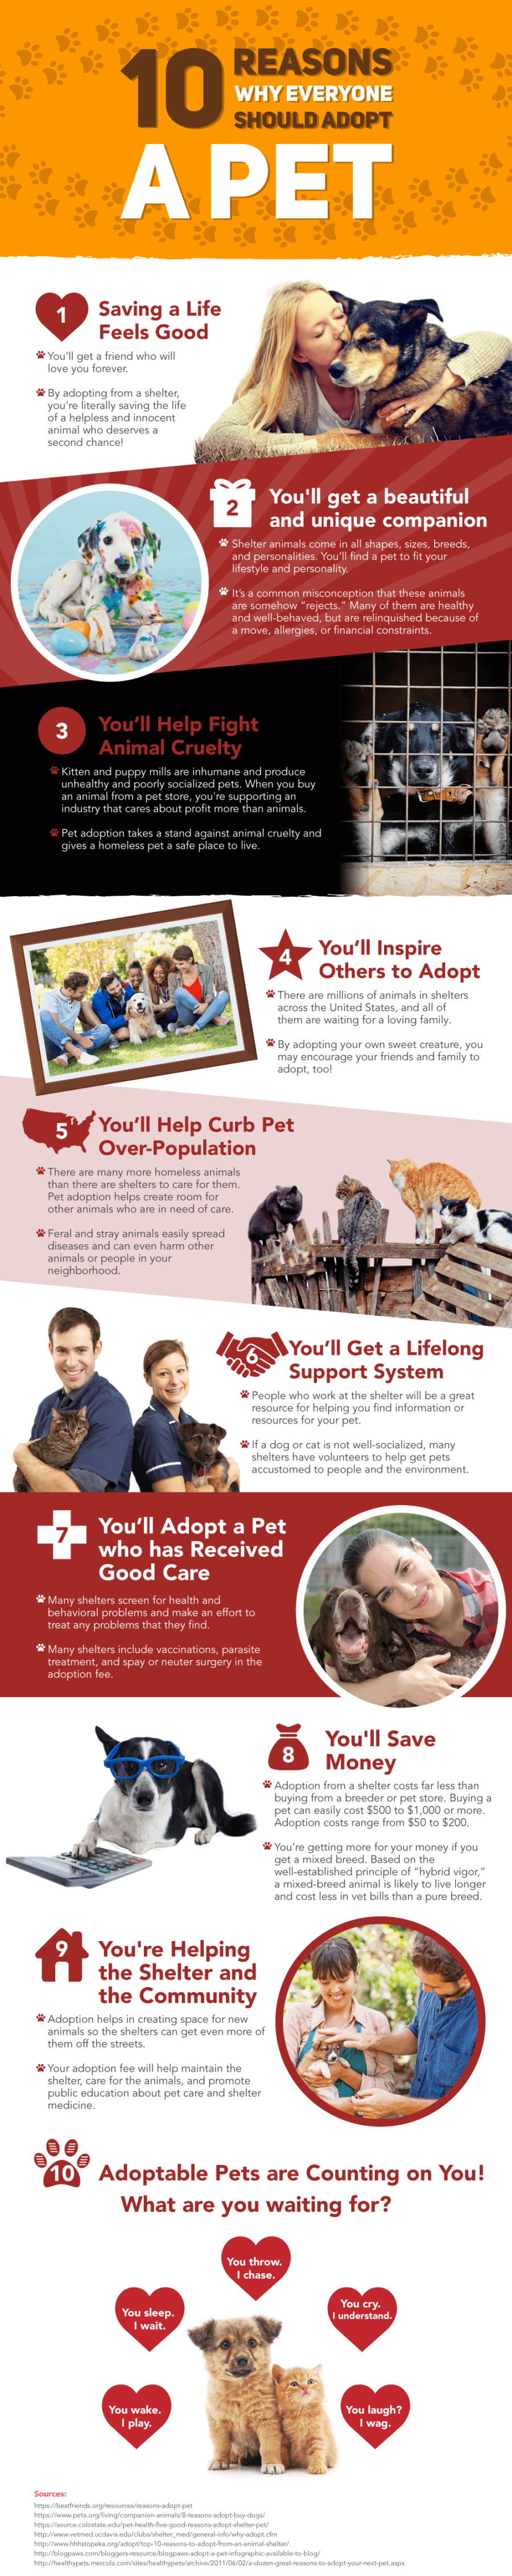 FitBark_10-Reasons-To-Adopt-A-Pet-900x4524 | Man's Best Friend Up for Adoption